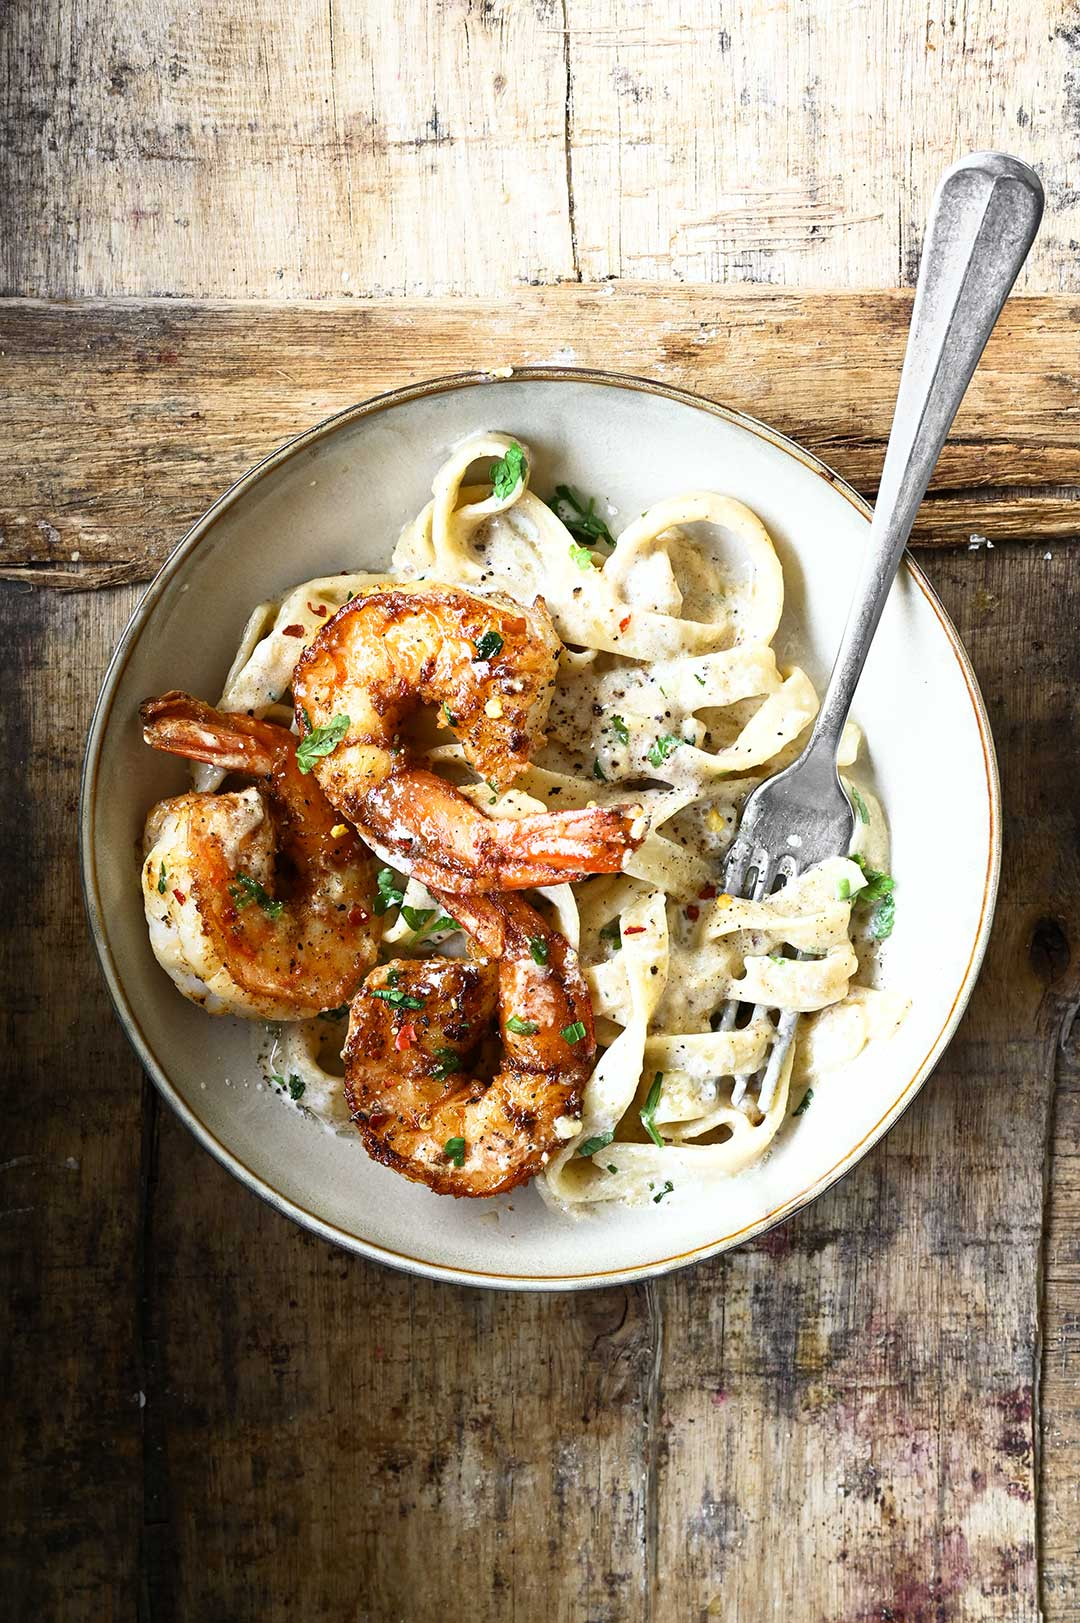 serving dumplings | Creamy Garlic Shrimp Pasta